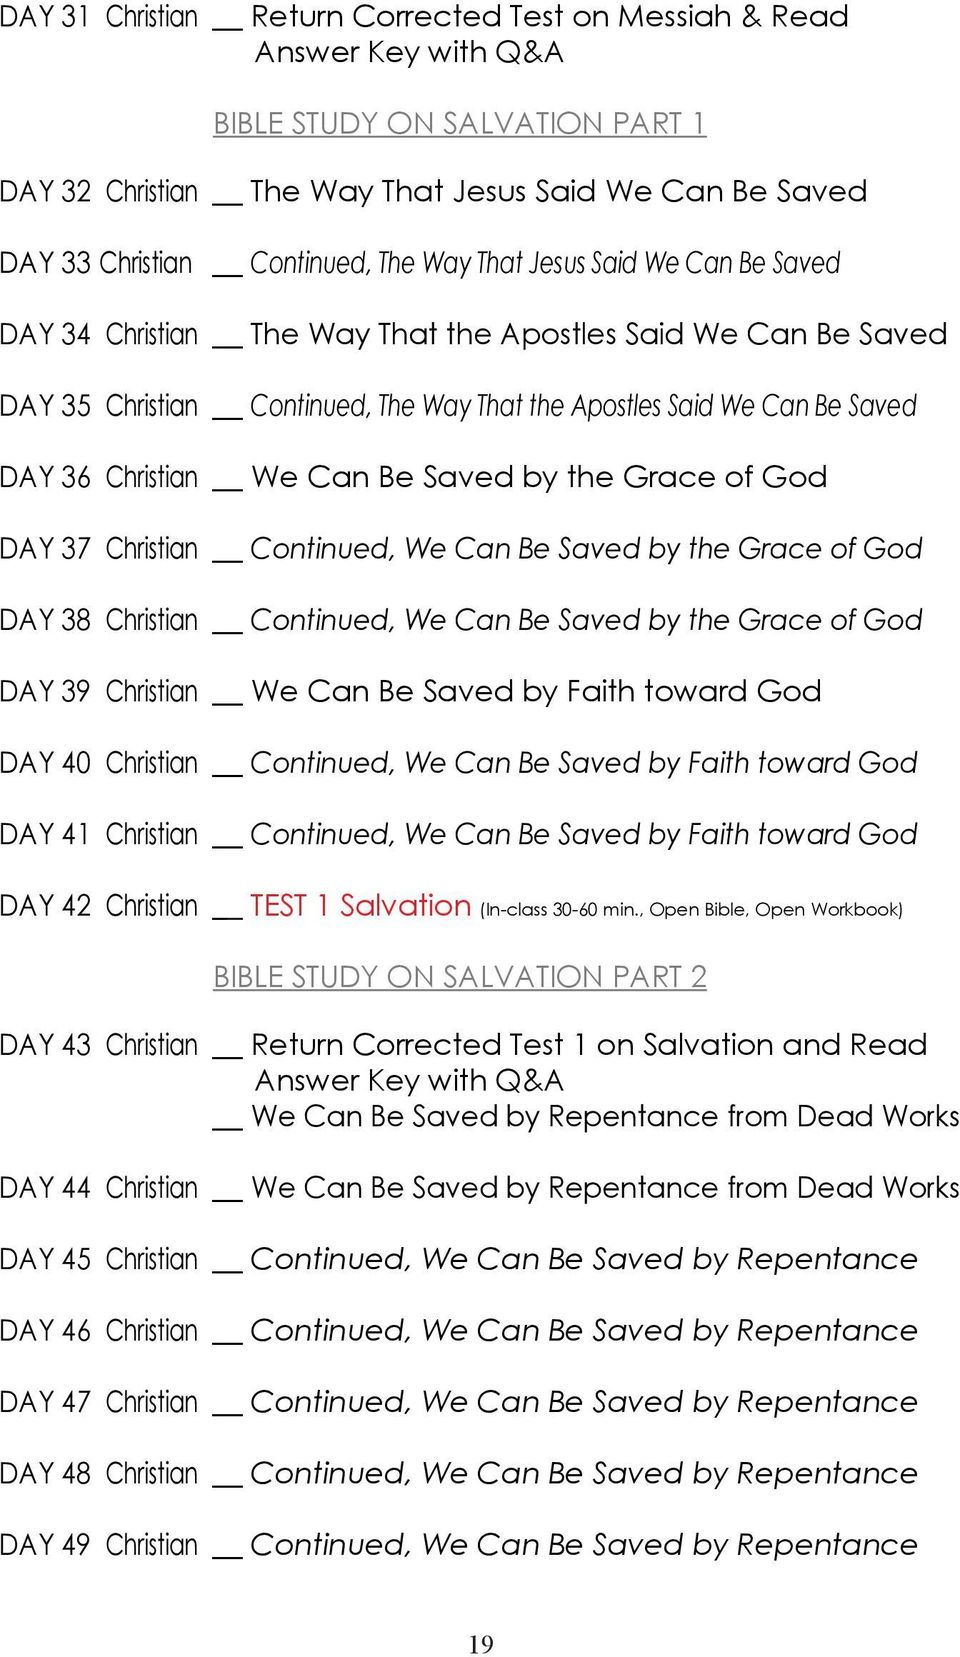 Be Saved by the Grace of God DAY 37 Christian Continued, We Can Be Saved by the Grace of God DAY 38 Christian Continued, We Can Be Saved by the Grace of God DAY 39 Christian We Can Be Saved by Faith